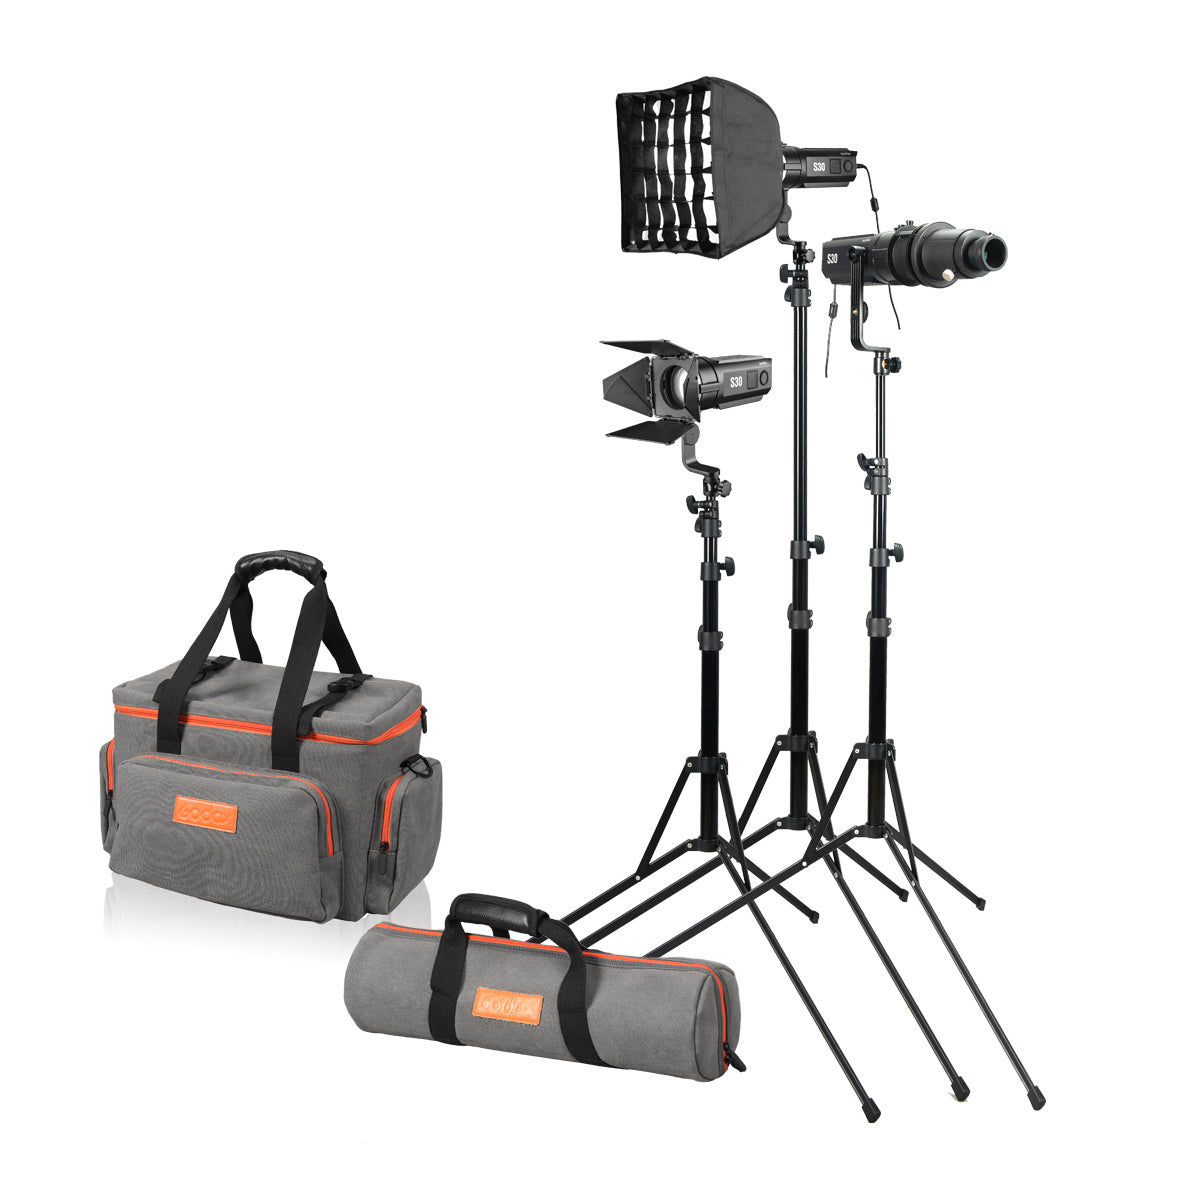 Headshot Interviewing Portrait and Still Life Photography Godox S30 Focusing LED Light 30W Spotlight Creates Superior Light Effects for Pre-Wedding Photography Video Lighting